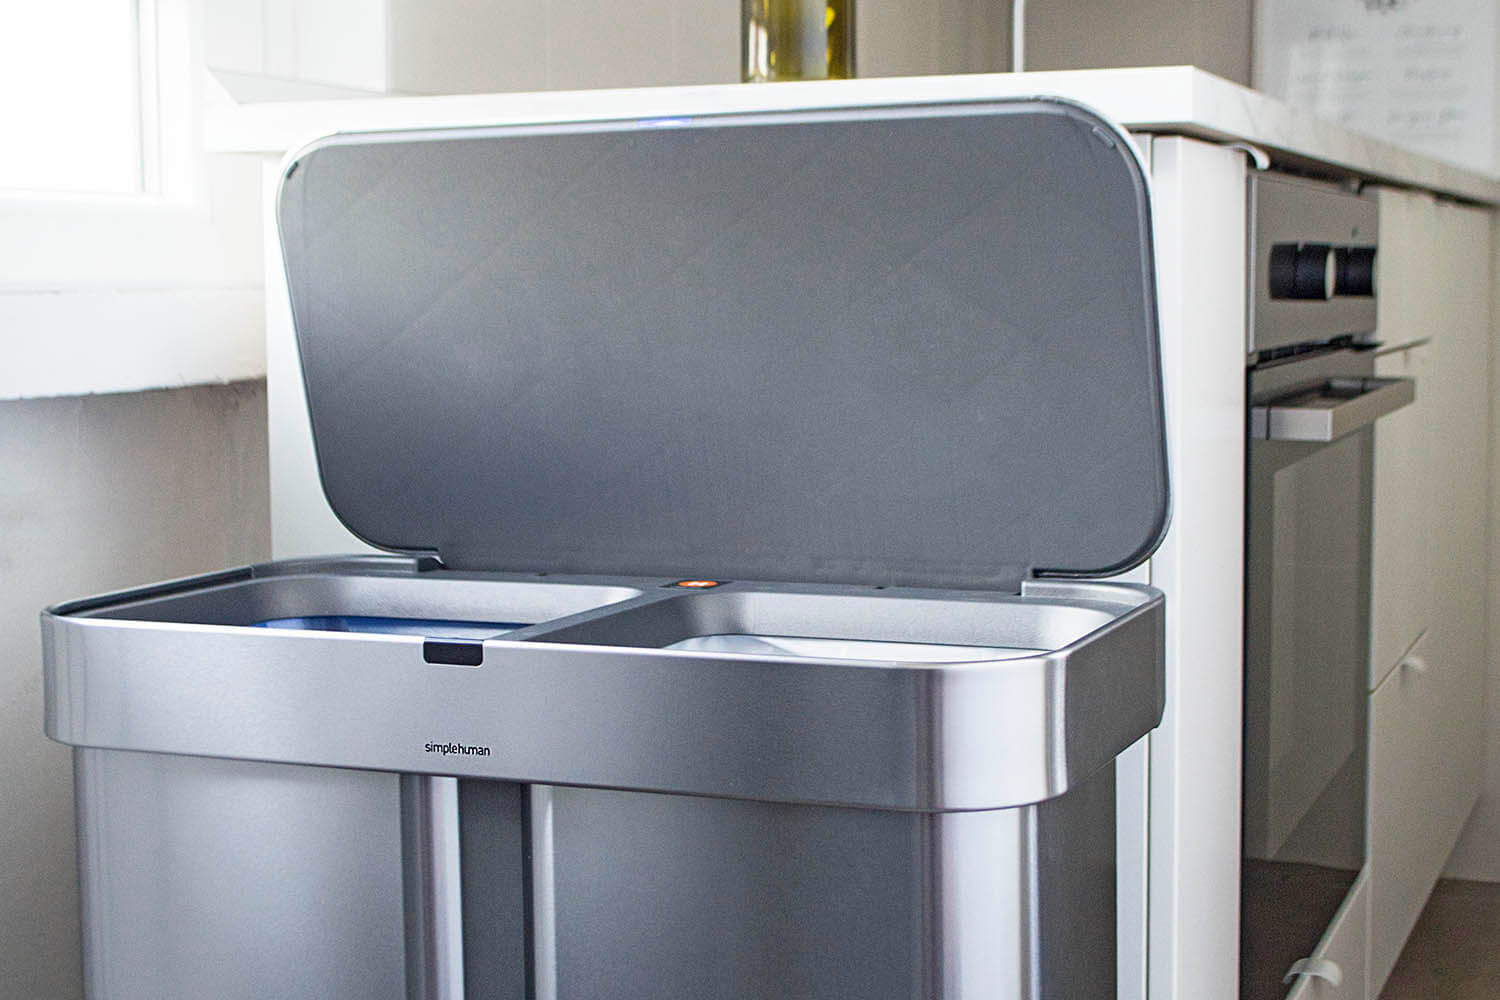 Simple Human trash can review